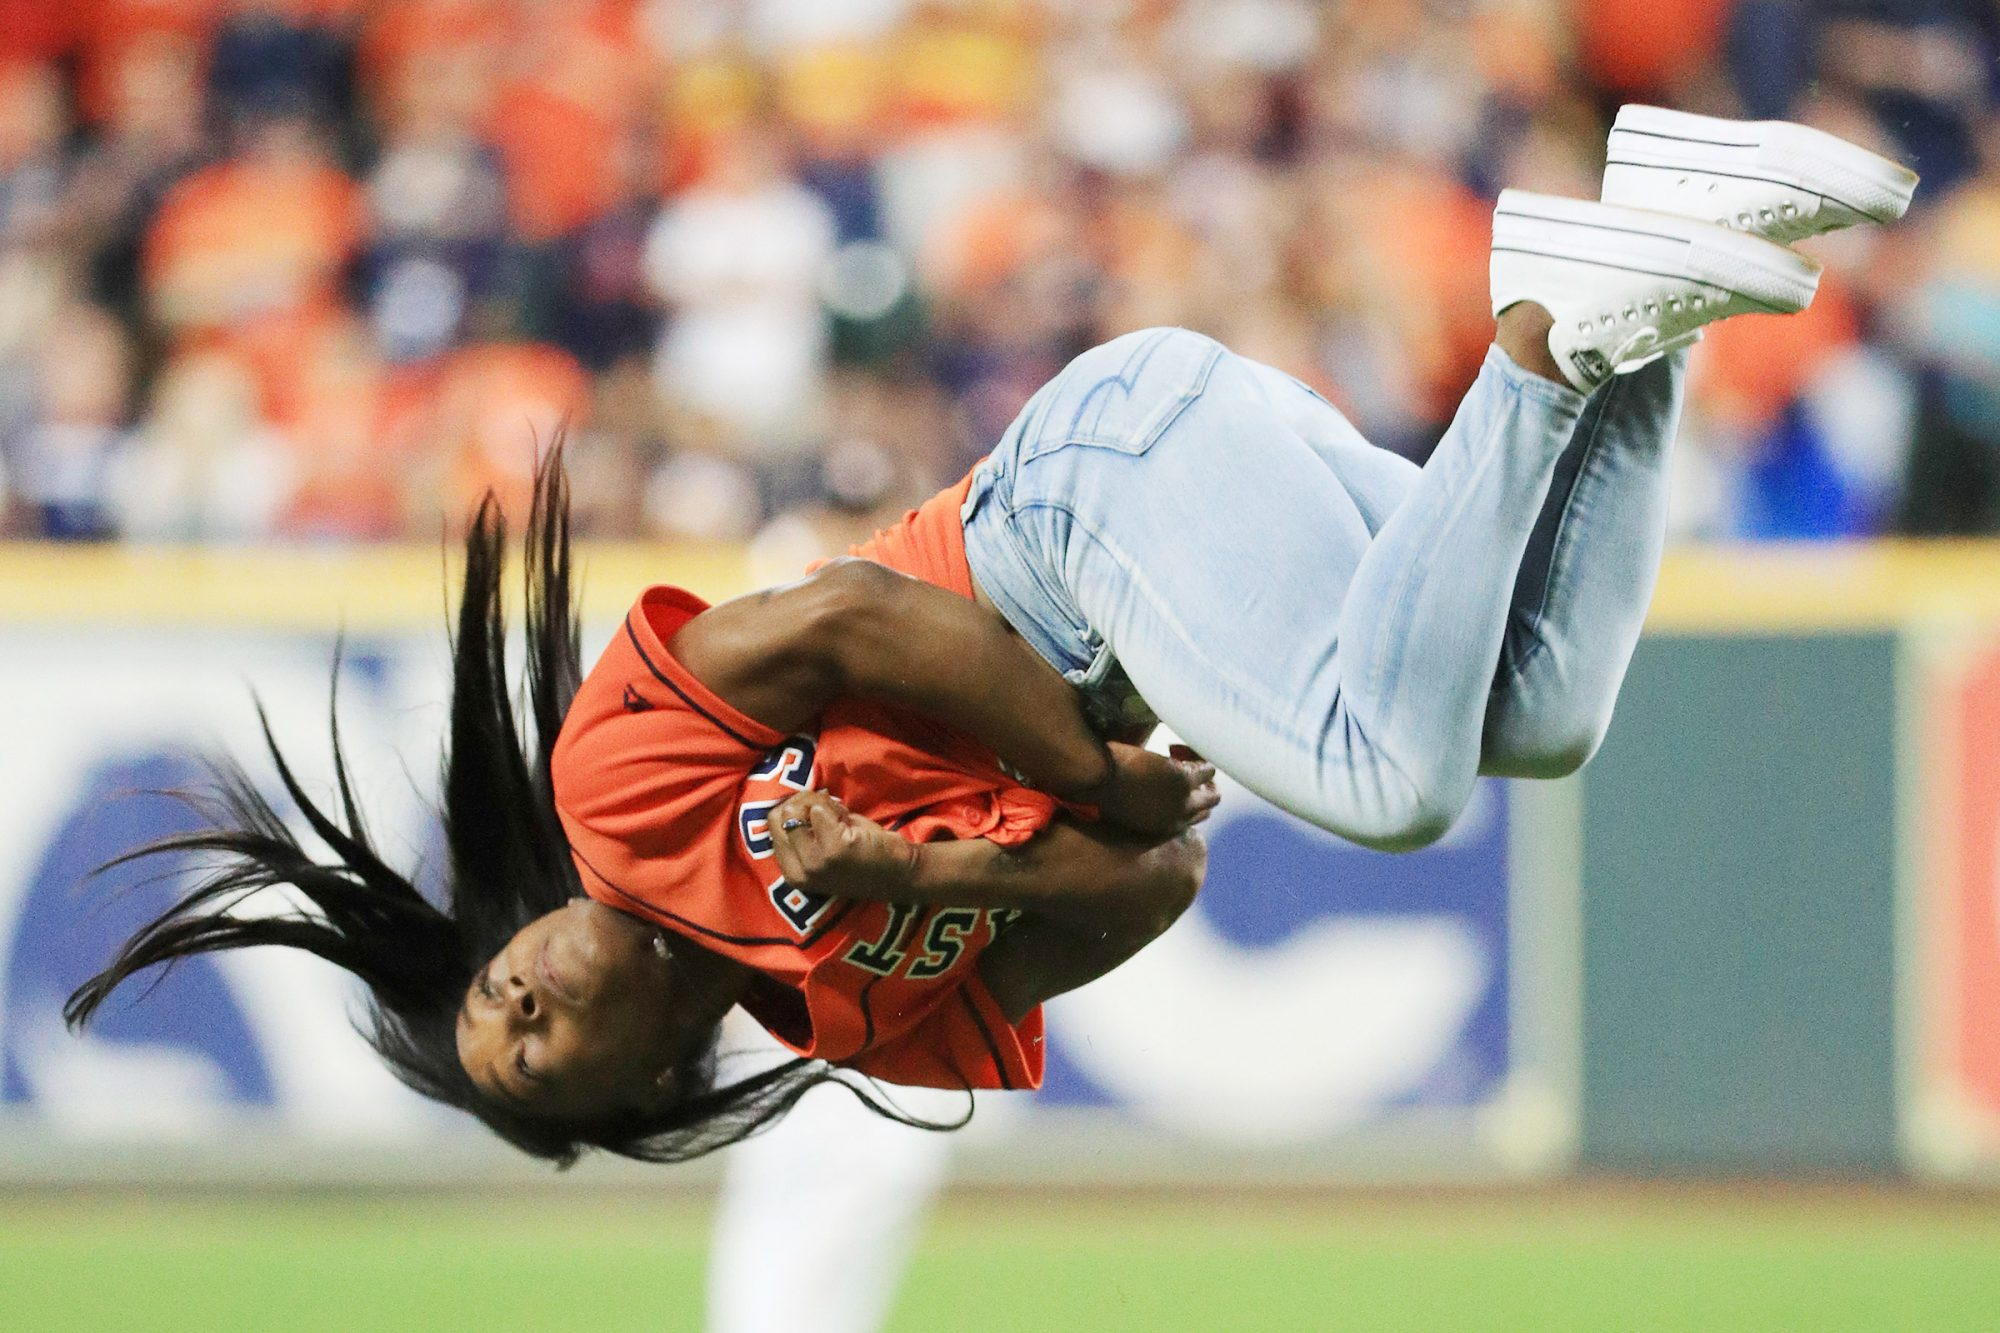 Simone Biles performs a flip after throwing out the ceremonial first pitch prior to Game Two of the 2019 World Series between the Houston Astros and the Washington Nationals at Minute Maid Park on October 23, 2019